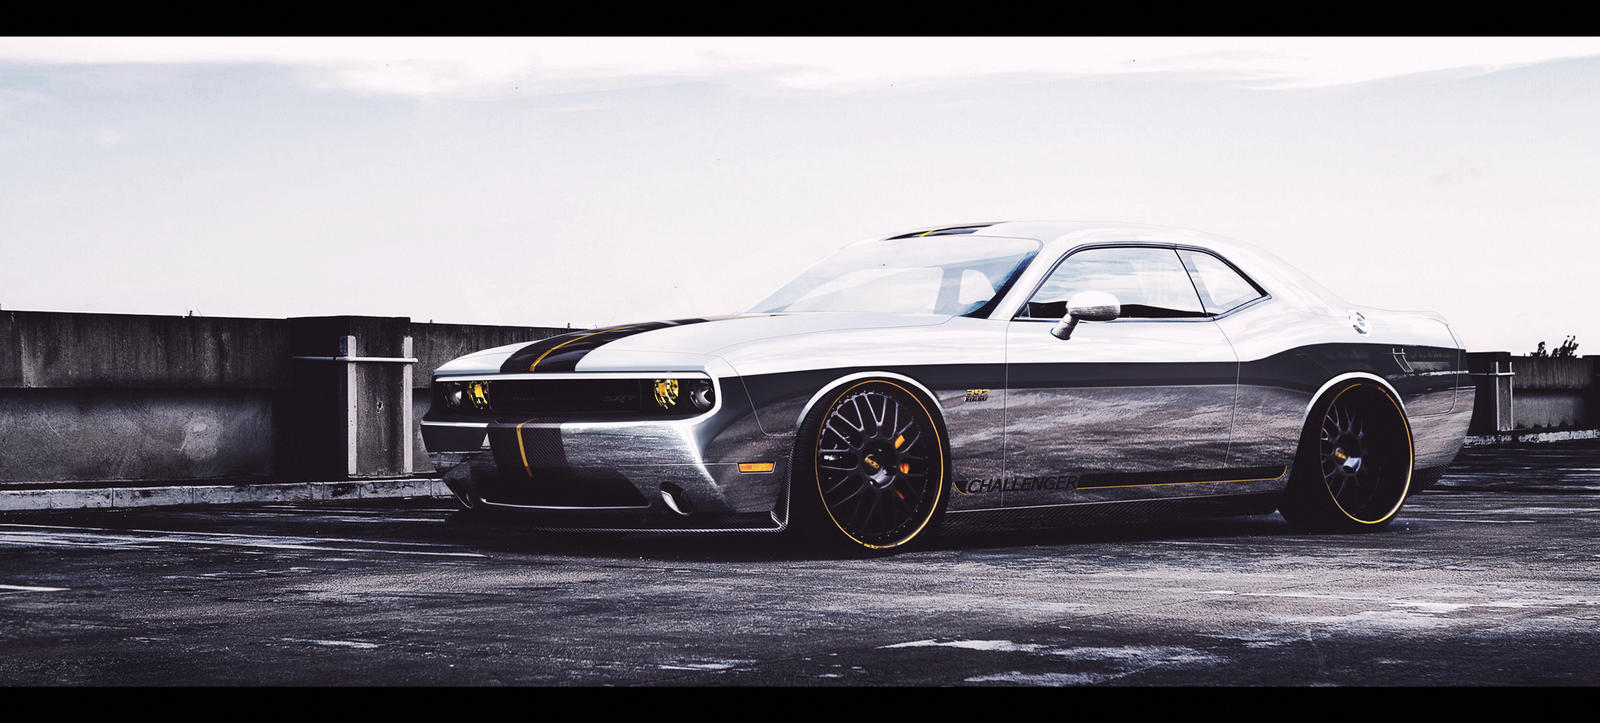 Dodge Challenger by Marko0811